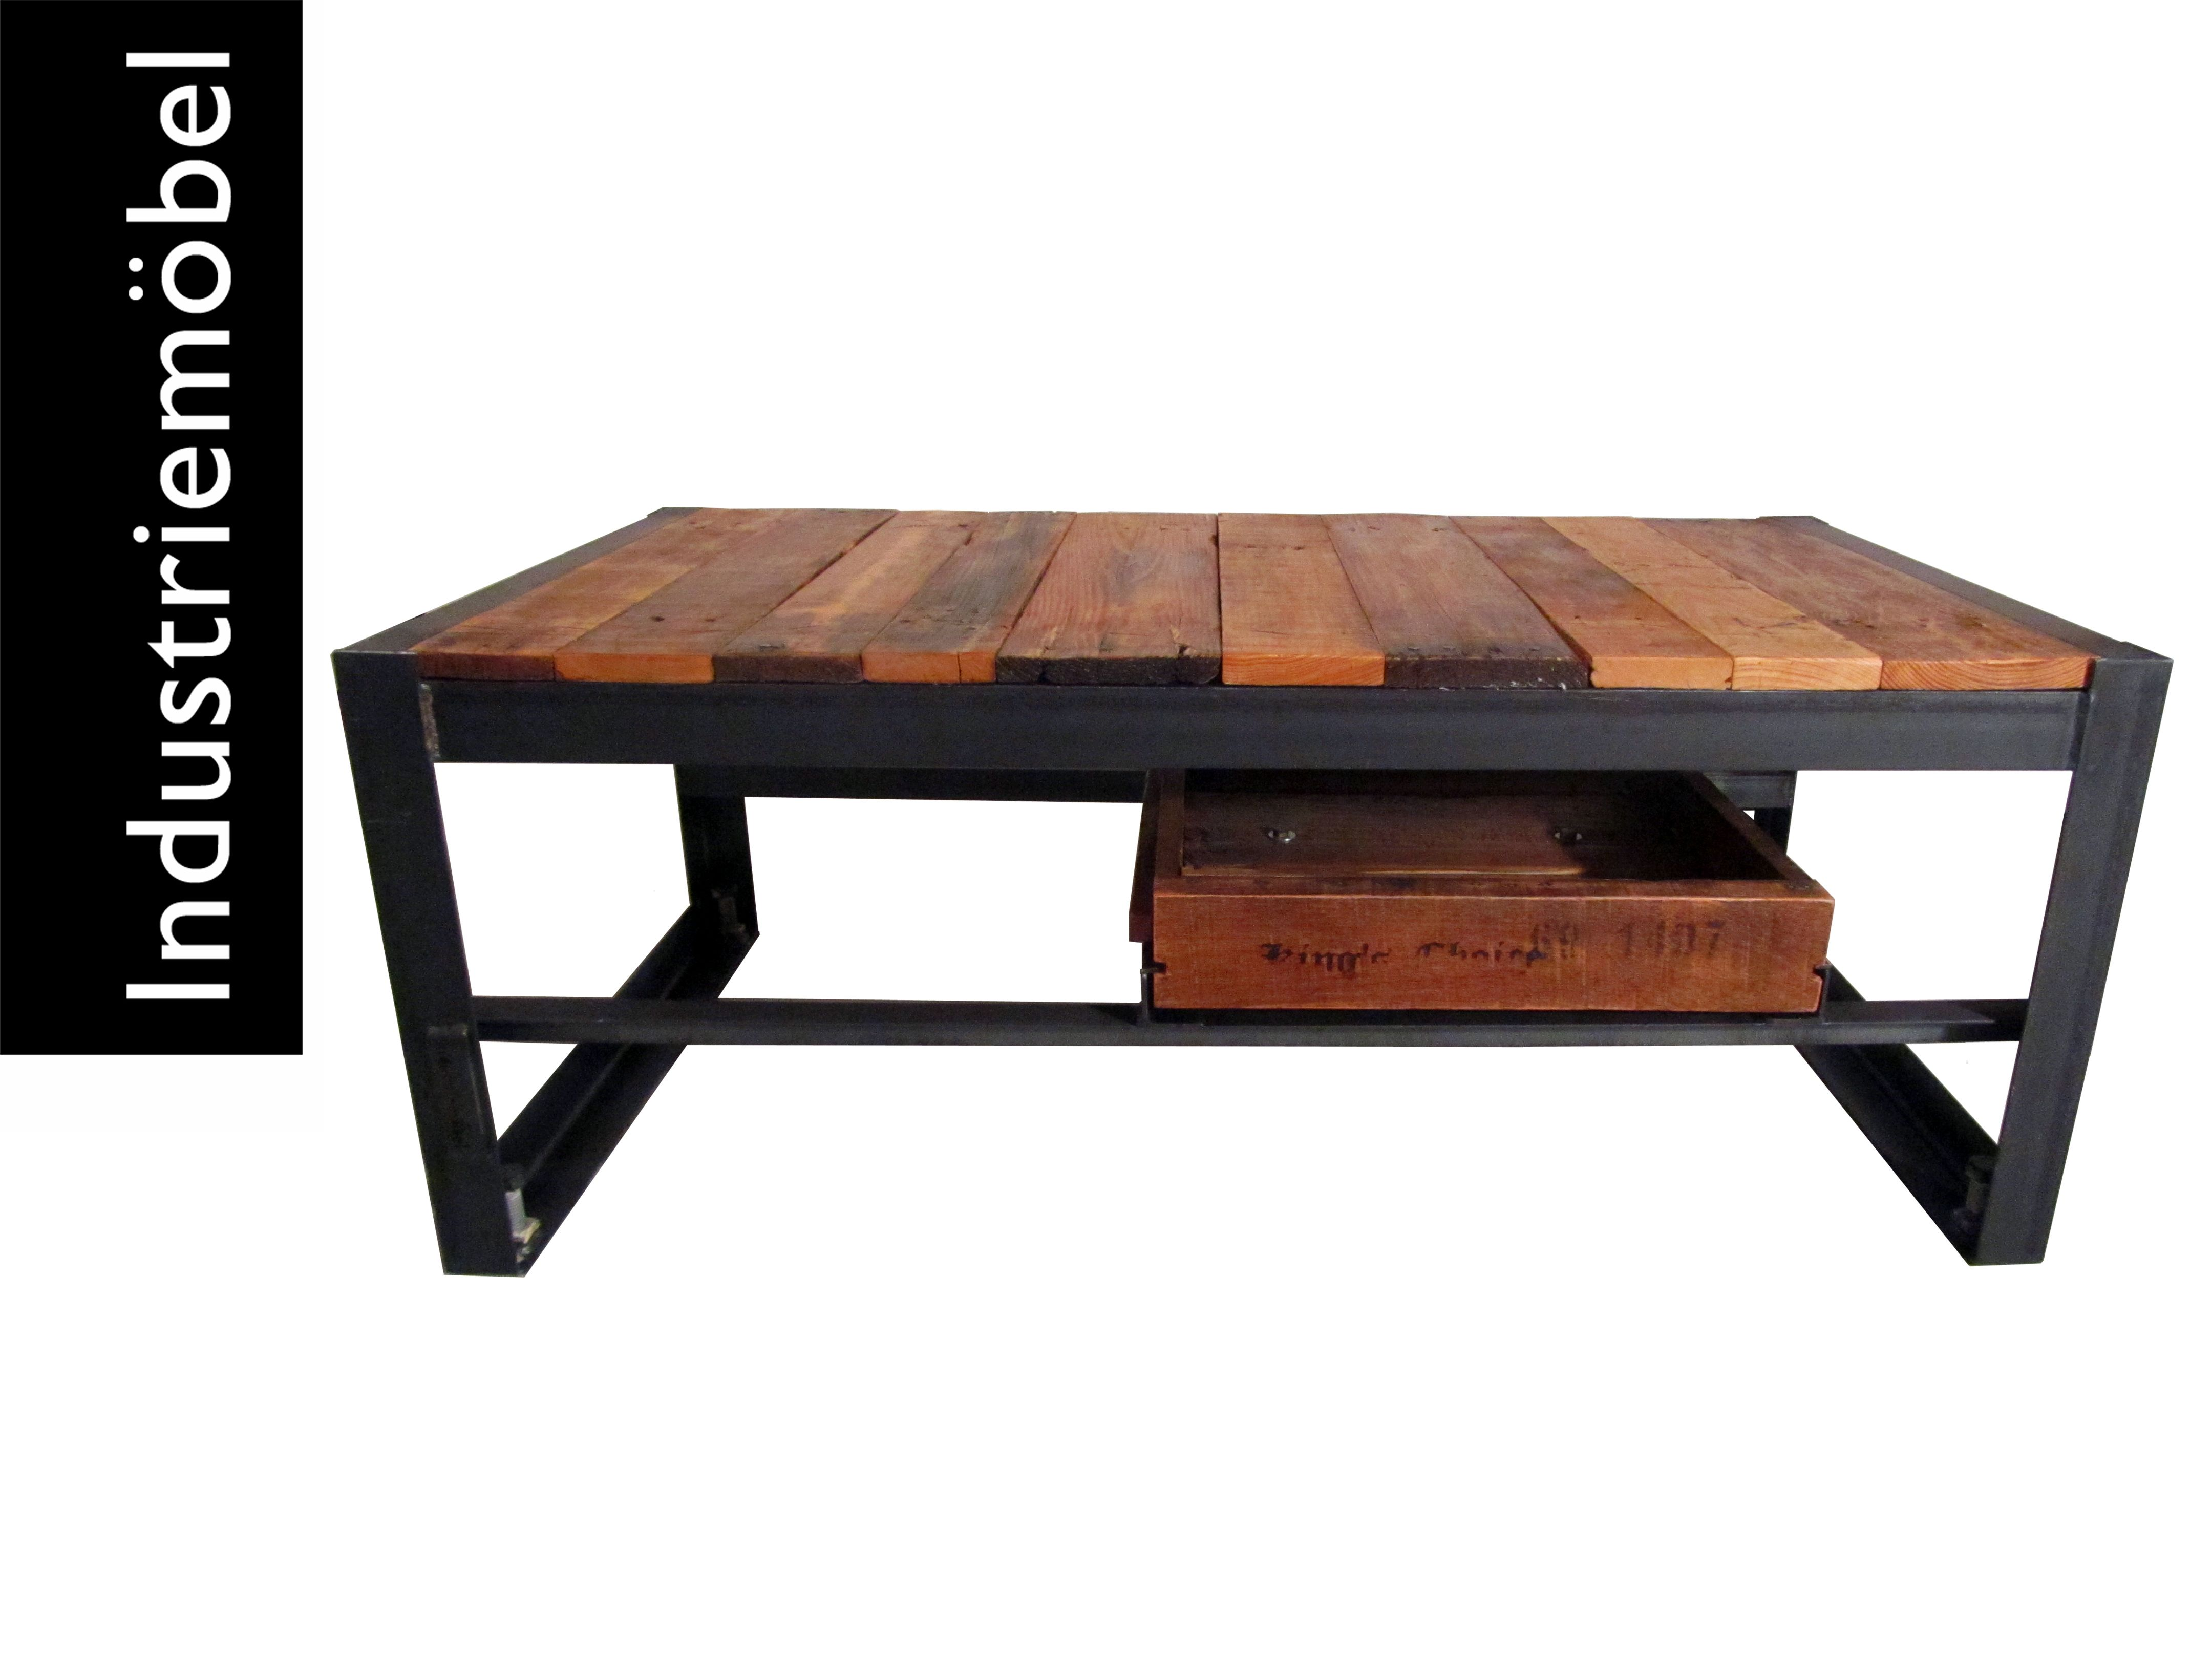 Handmade. Awesome. Furniture. I want everything this guy makes.